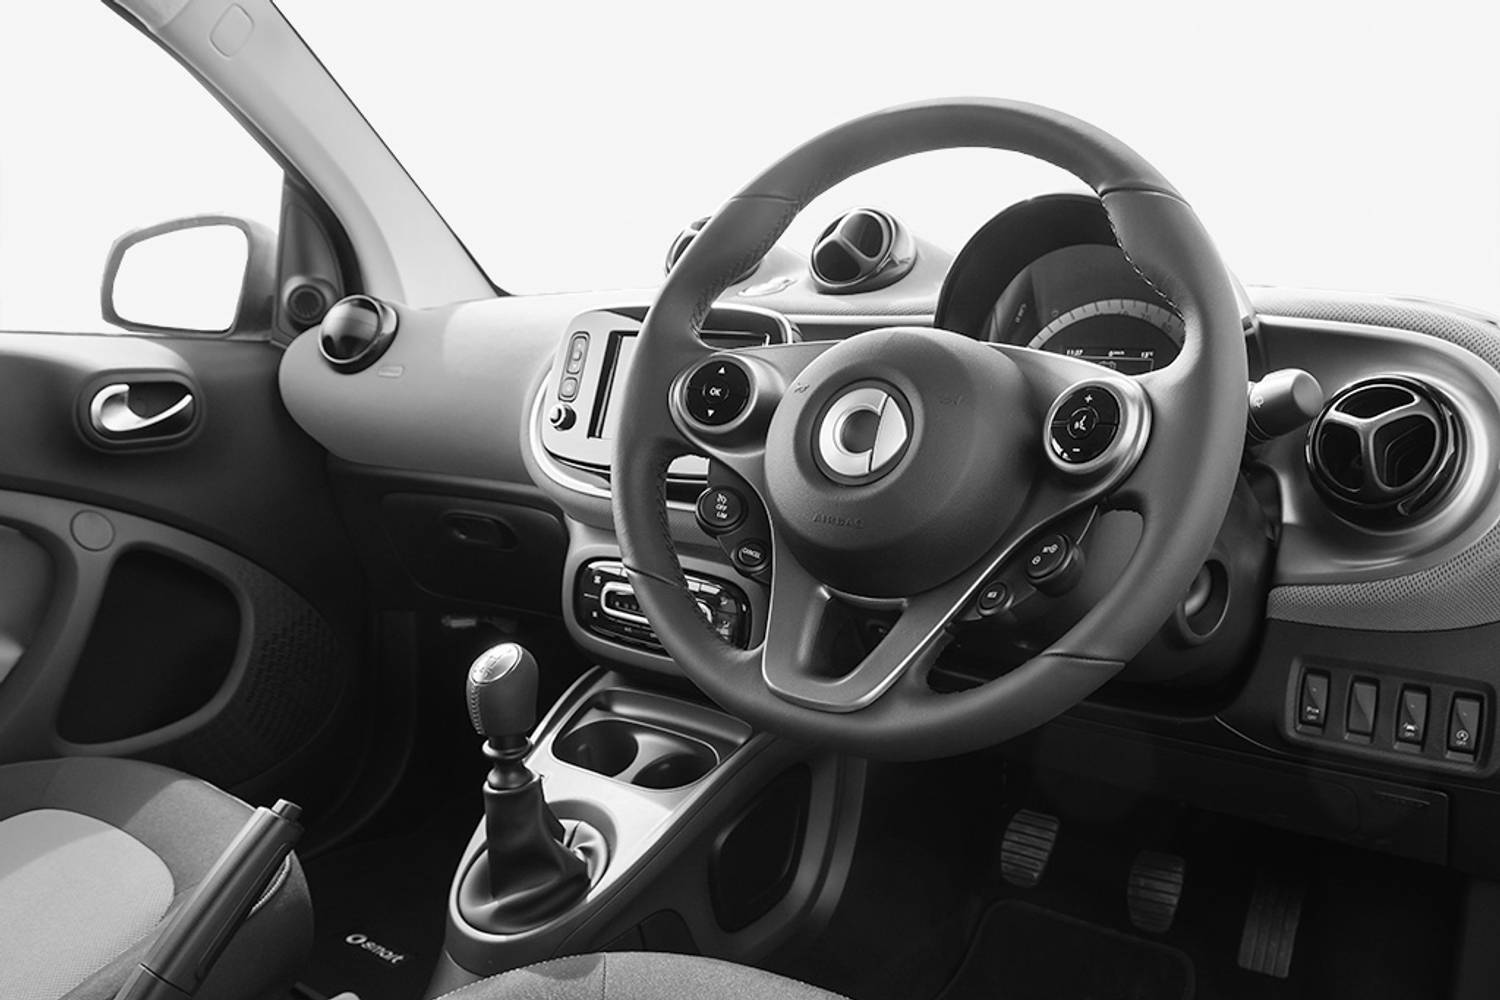 Smart Fortwo Coupe 2dr interior